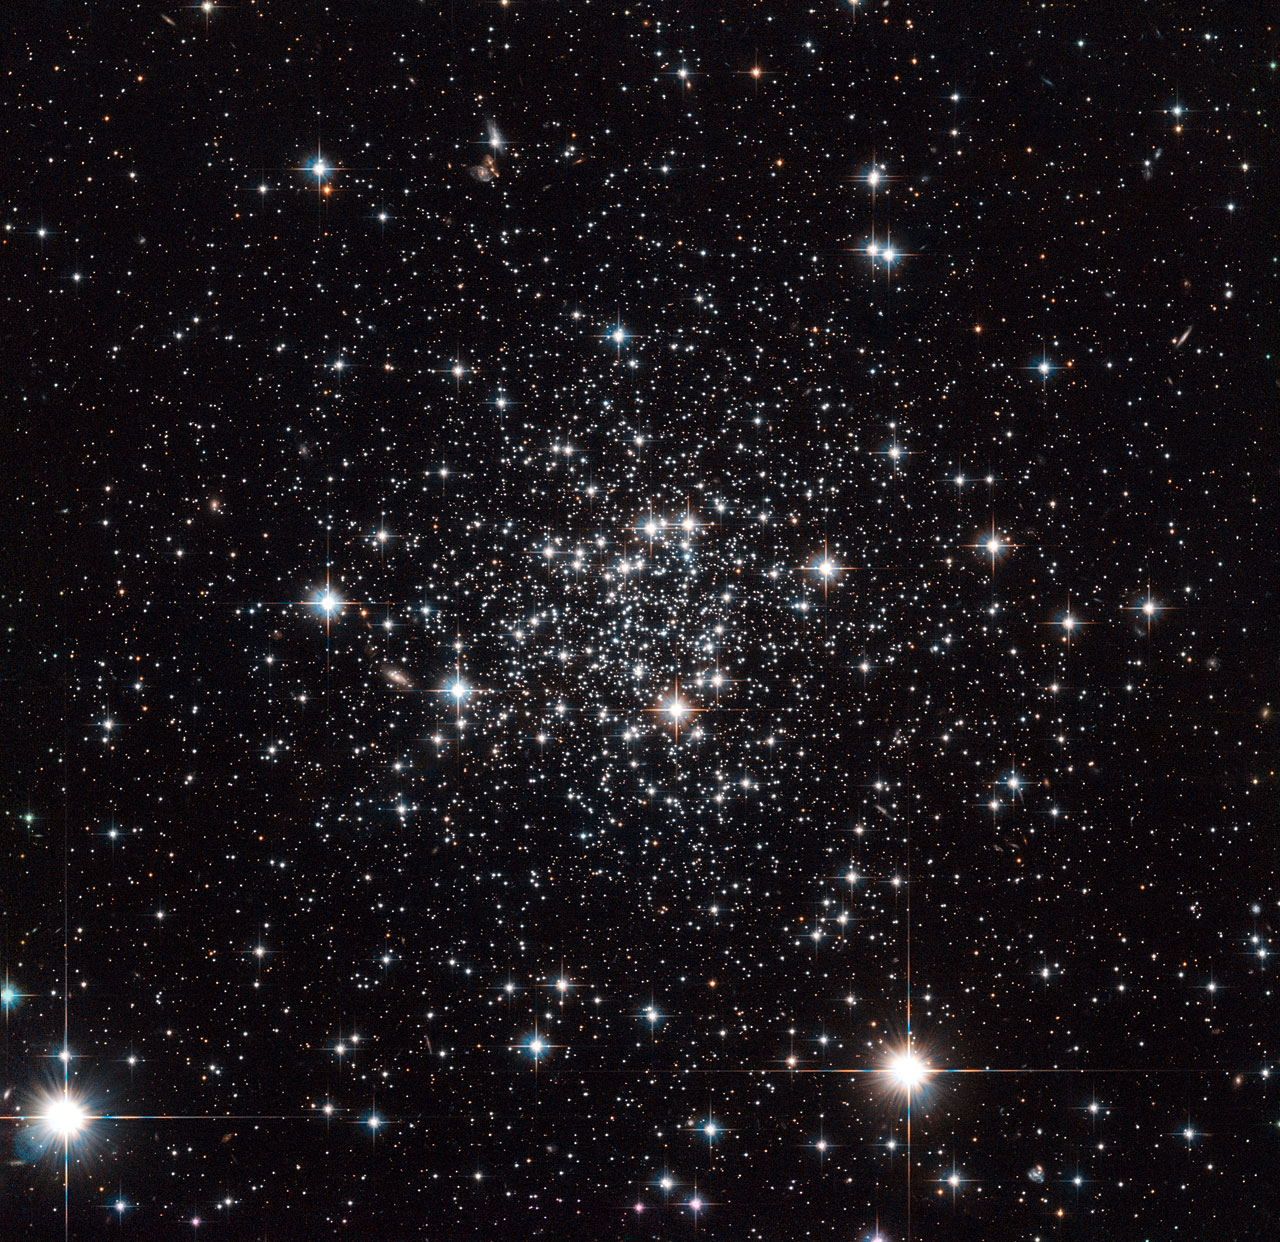 sagittarius dwarf galaxy nasa - photo #6